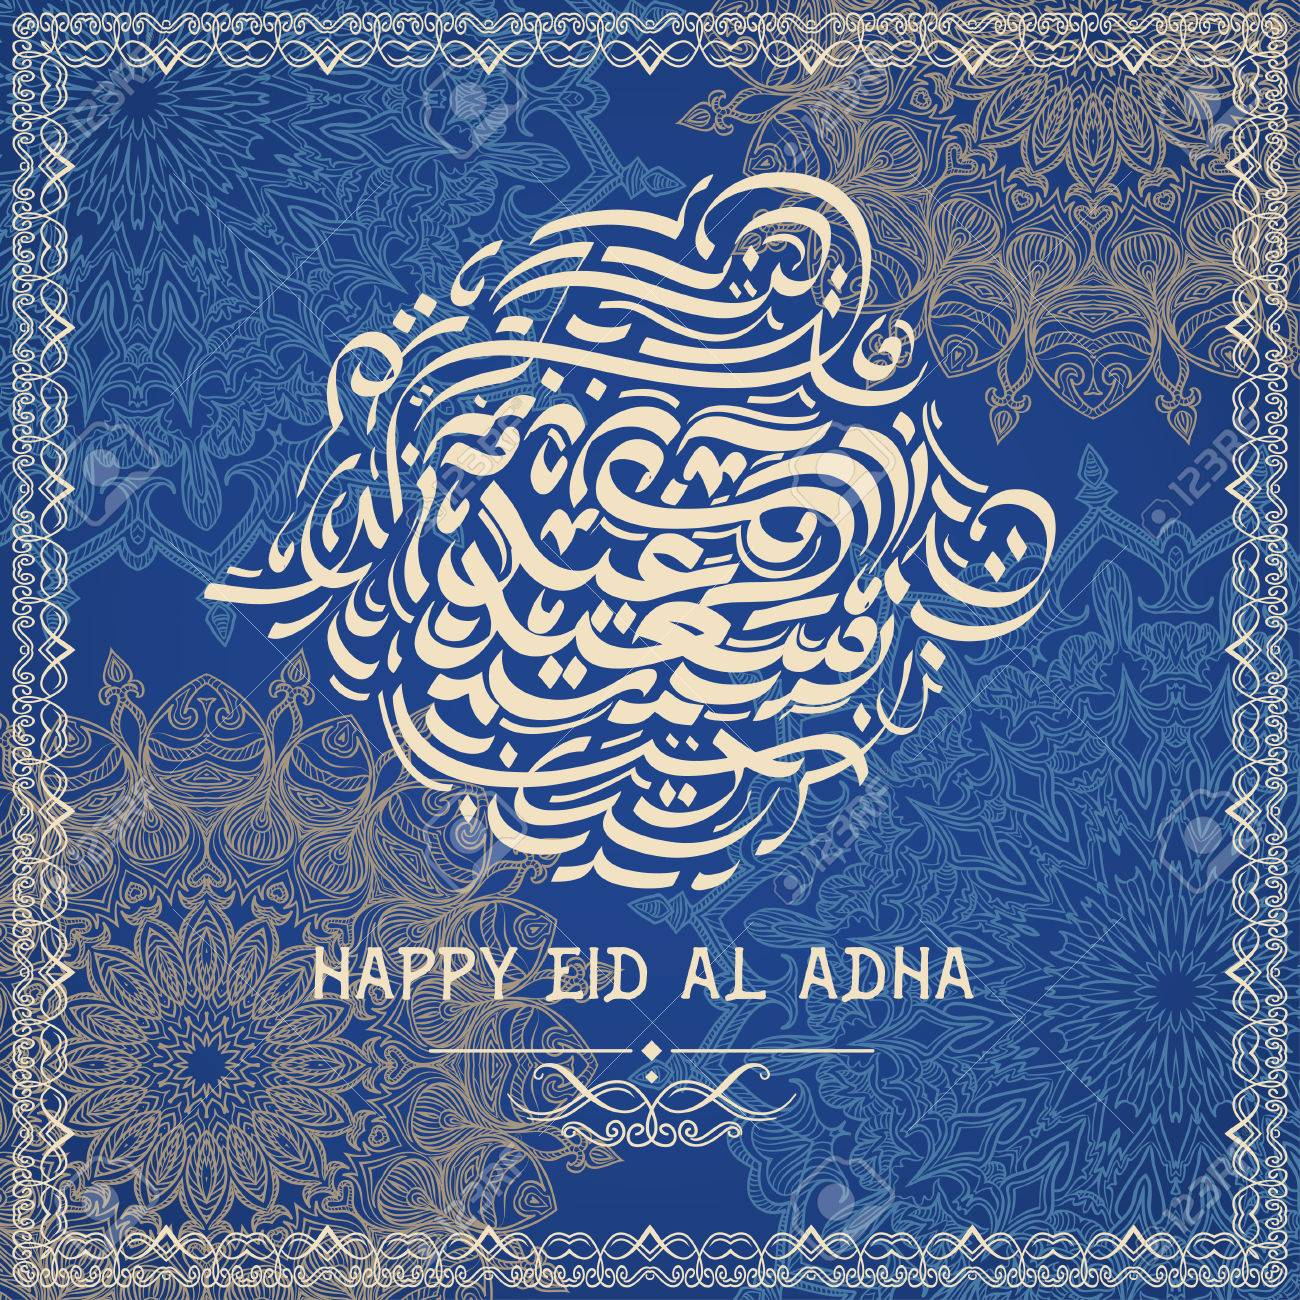 Eid Al Adha Latest News Images And Photos Crypticimages